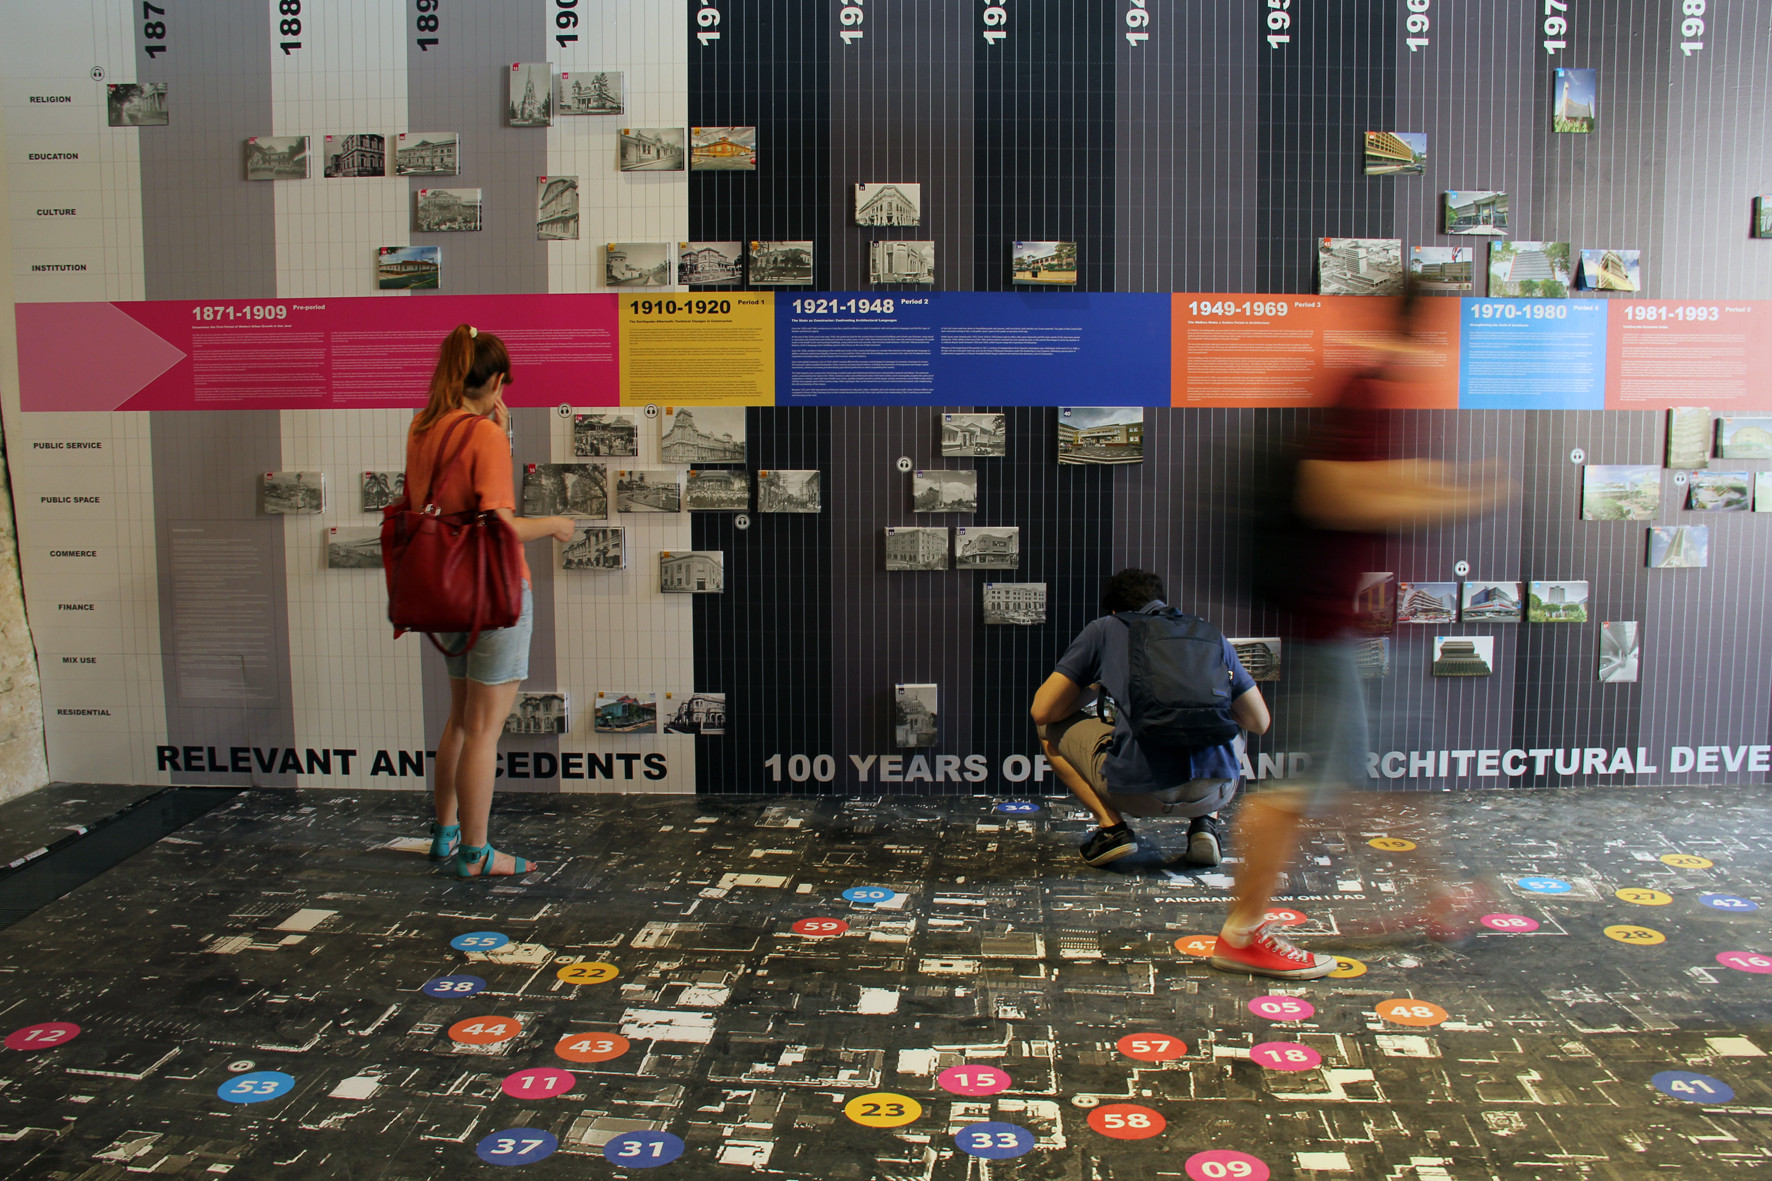 Ticollage City / Costa Rica Pavilion at the Venice Biennale 2014, Courtesy of Costa Rica Pavilion